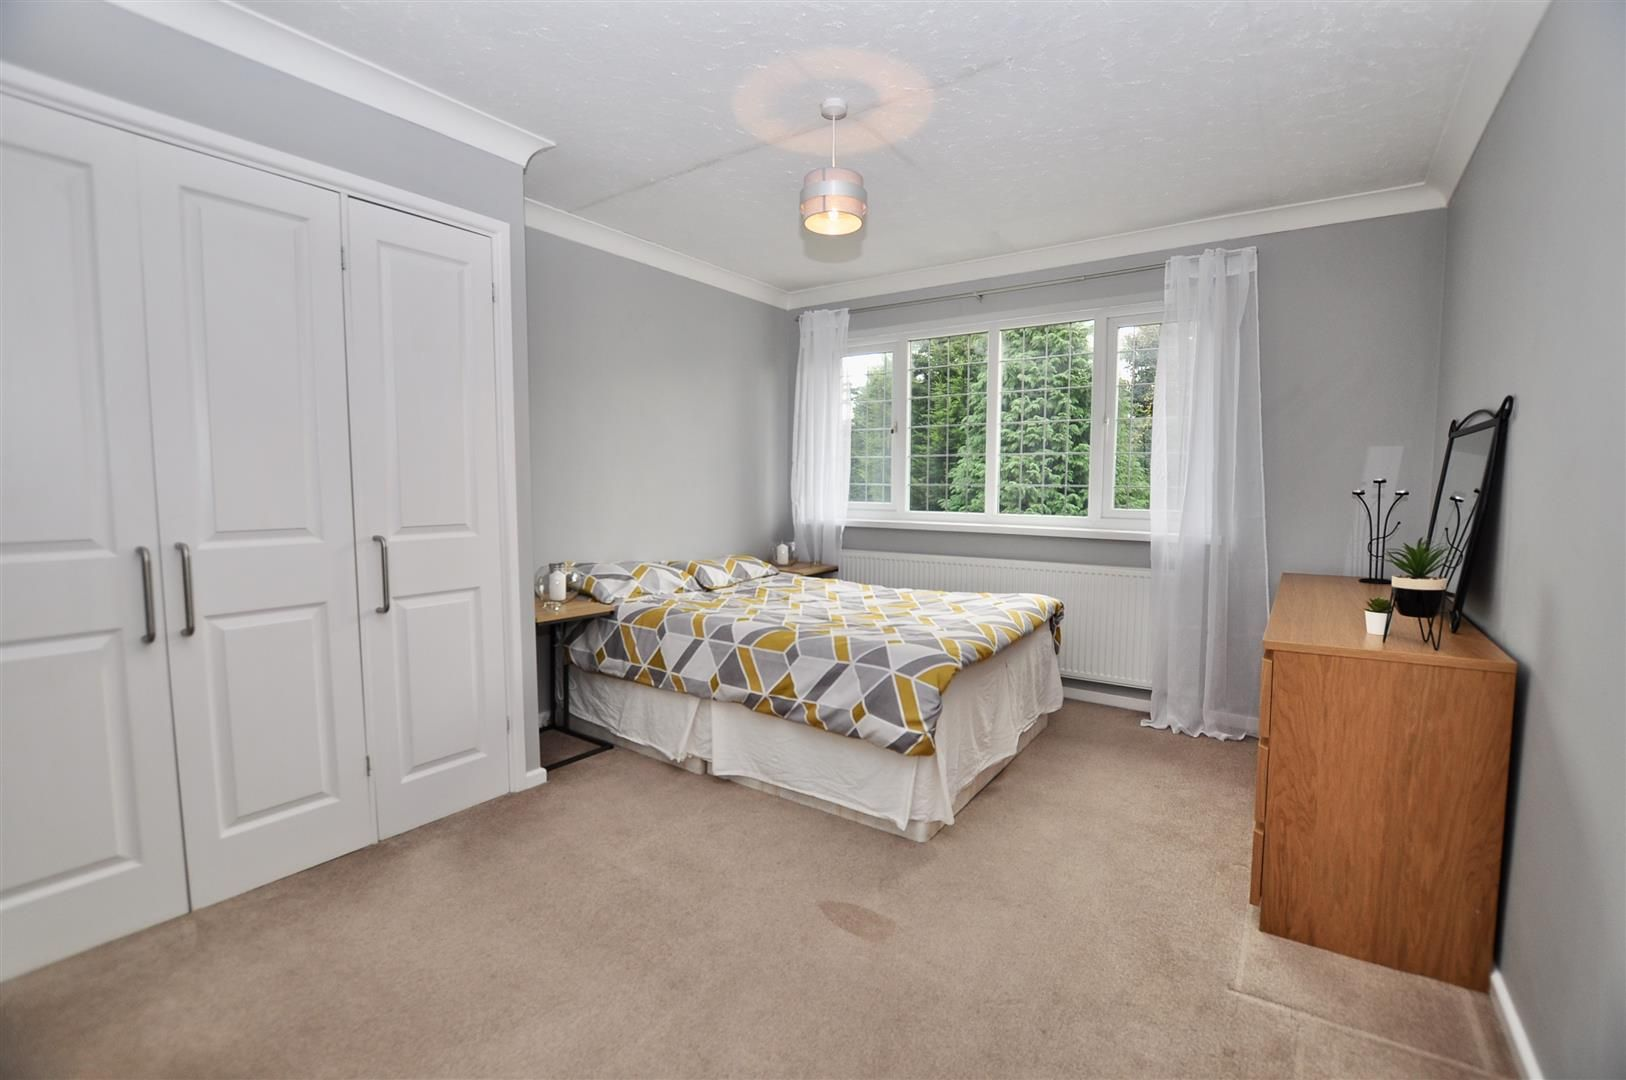 4 bed house for sale in Hagley  - Property Image 21